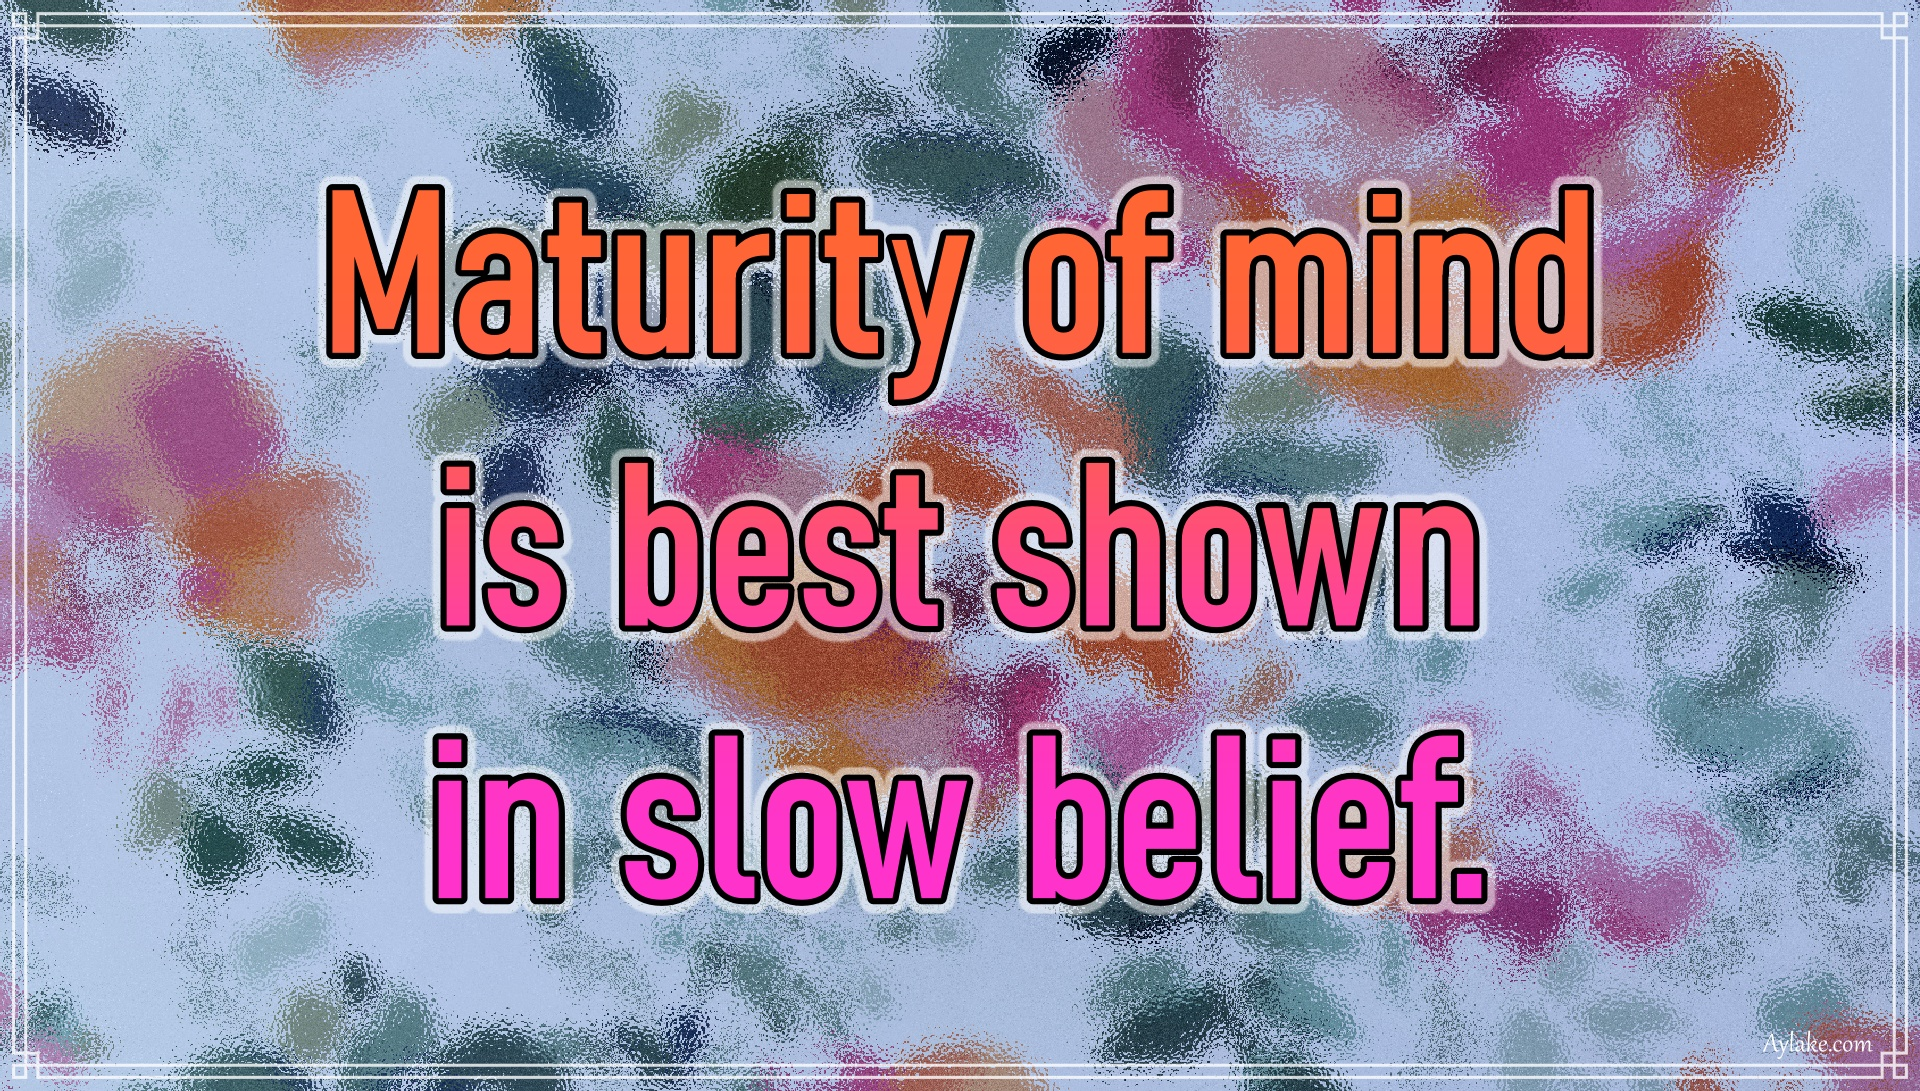 Wisdom quotes Maturity of mind is best shown in slow belief Aylake